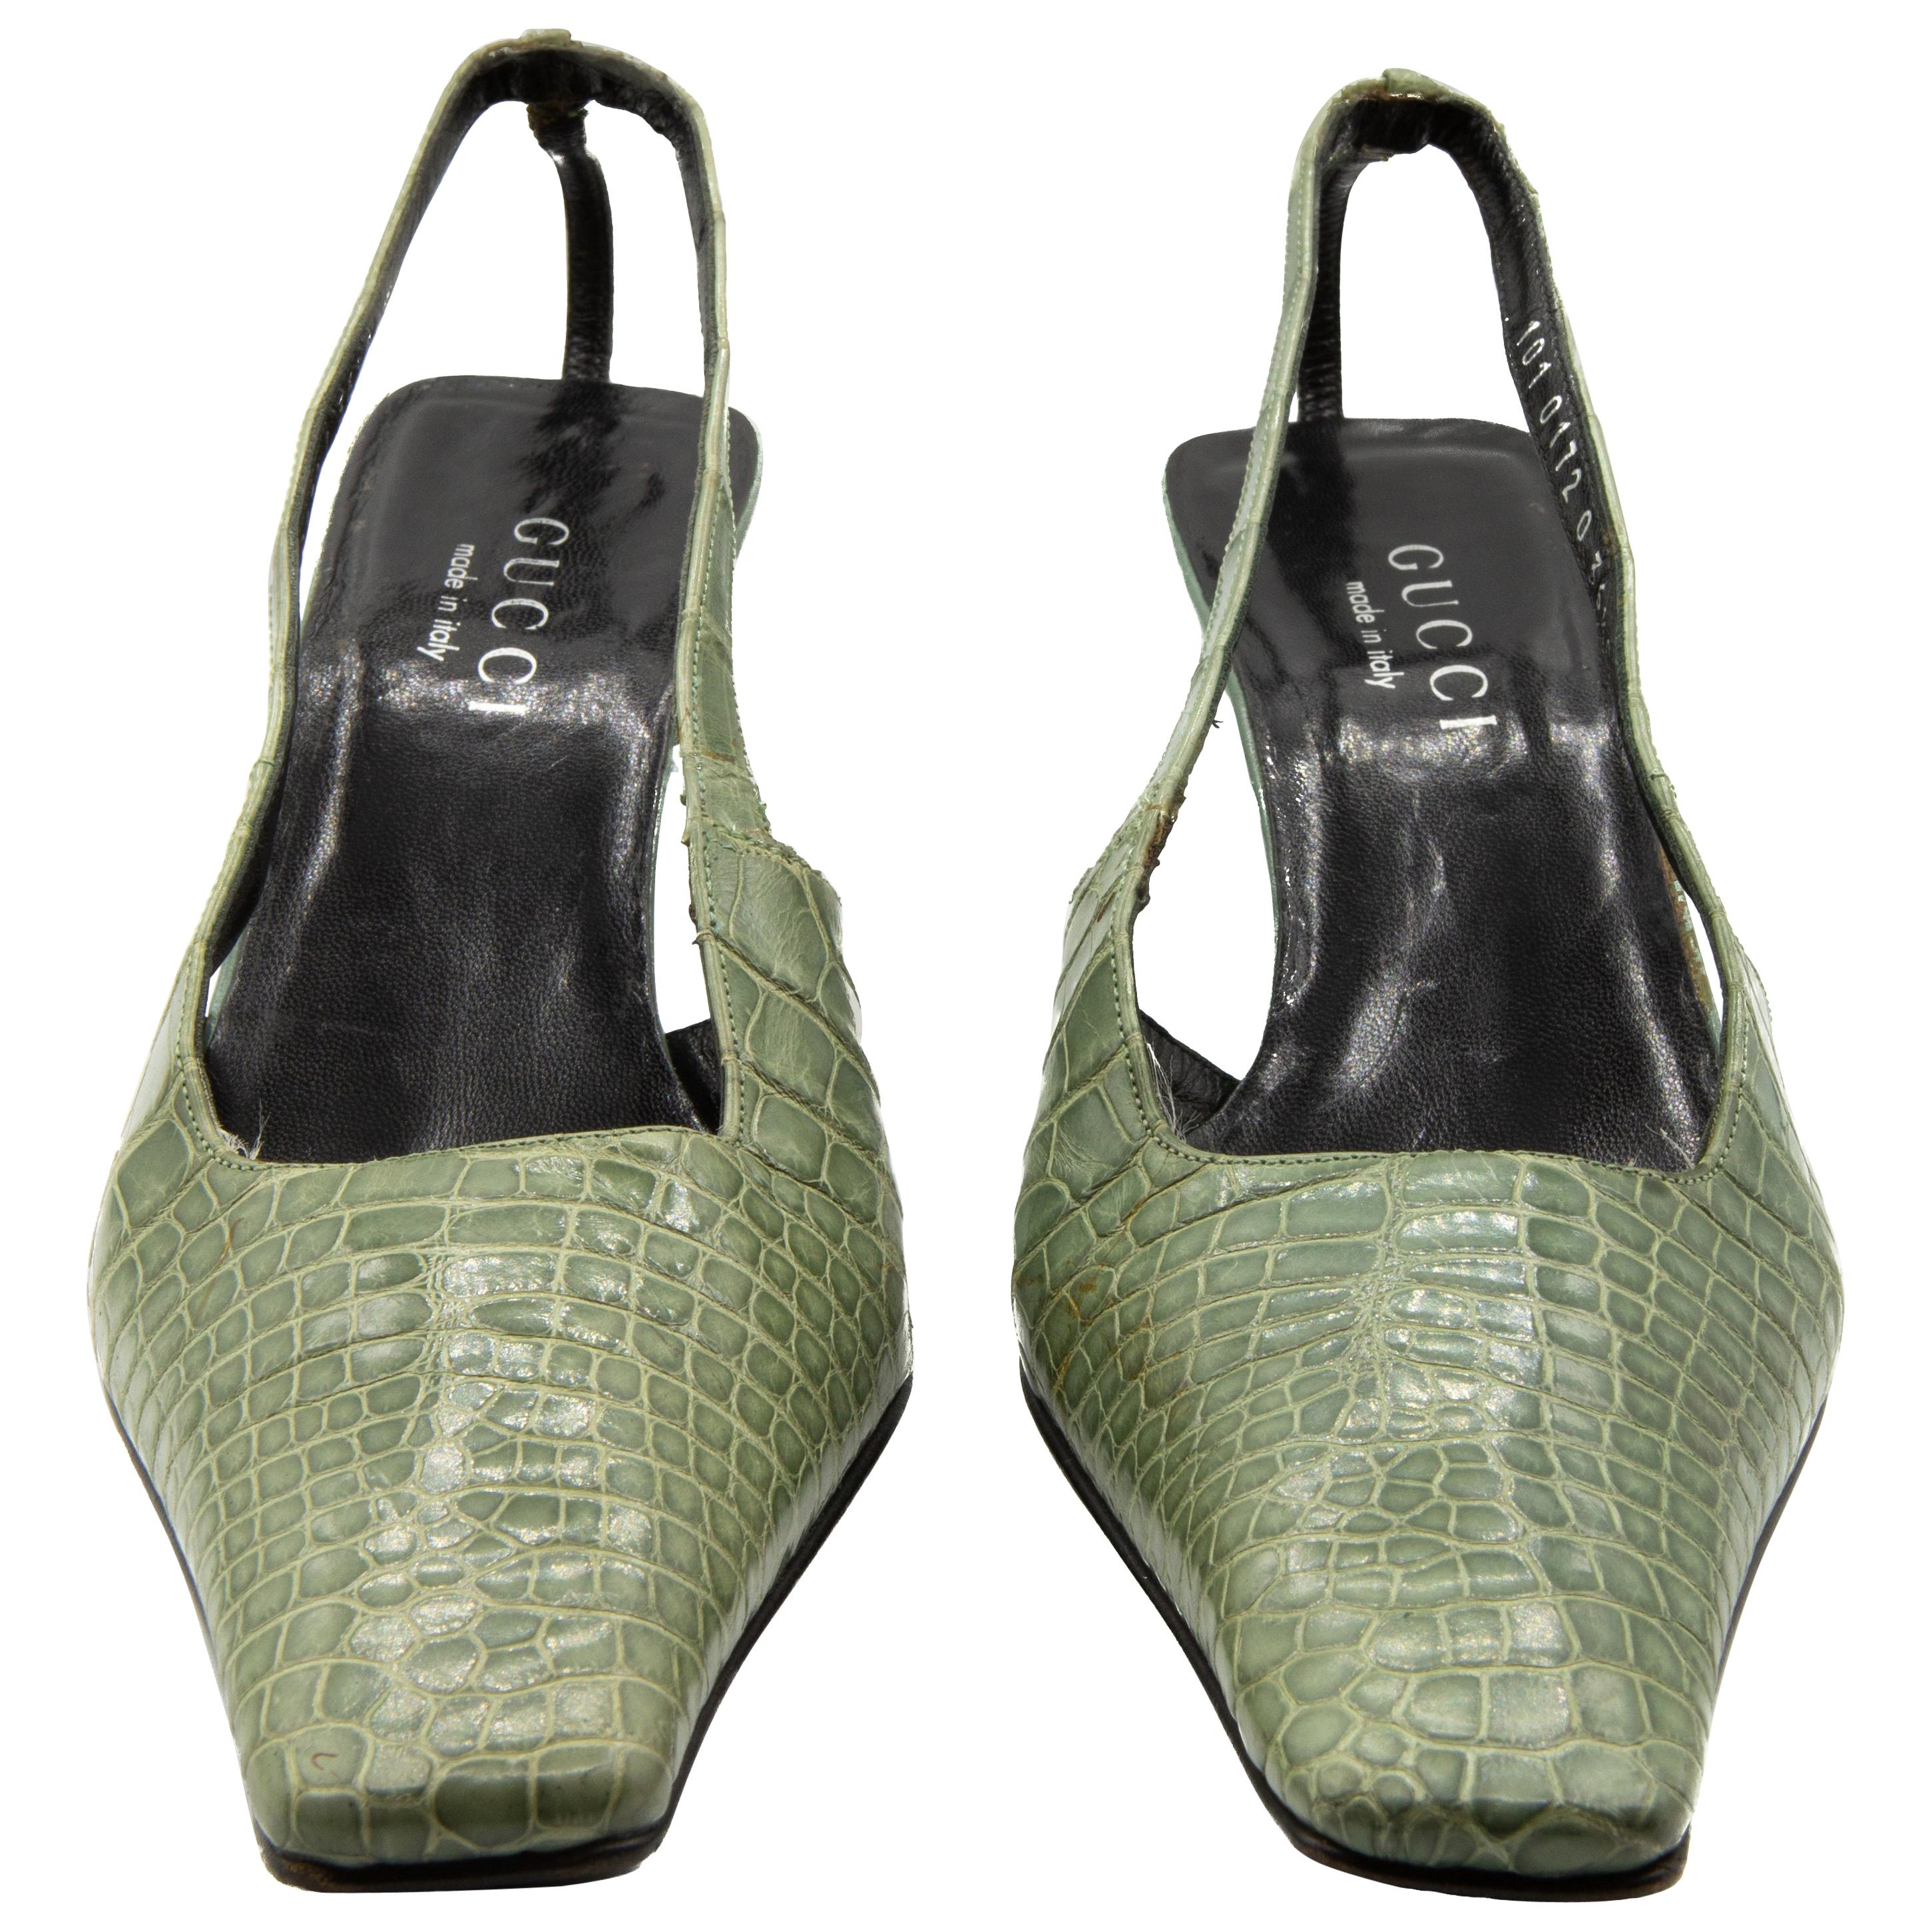 Tom Ford for Gucci S/S 1998 Green Crocodile Mules